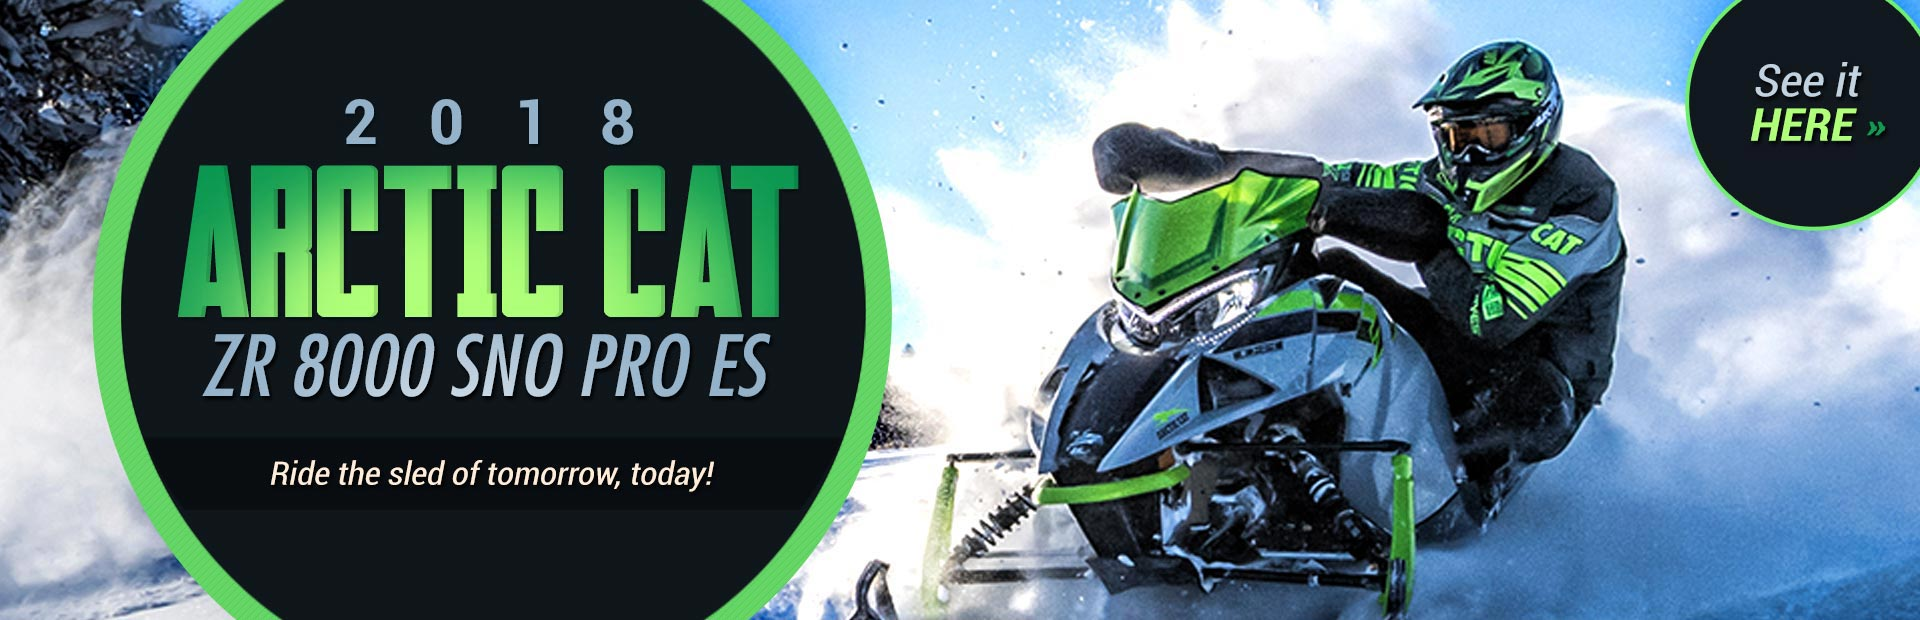 2018 Arctic Cat ZR 8000 Sno Pro ES: Click here for details.